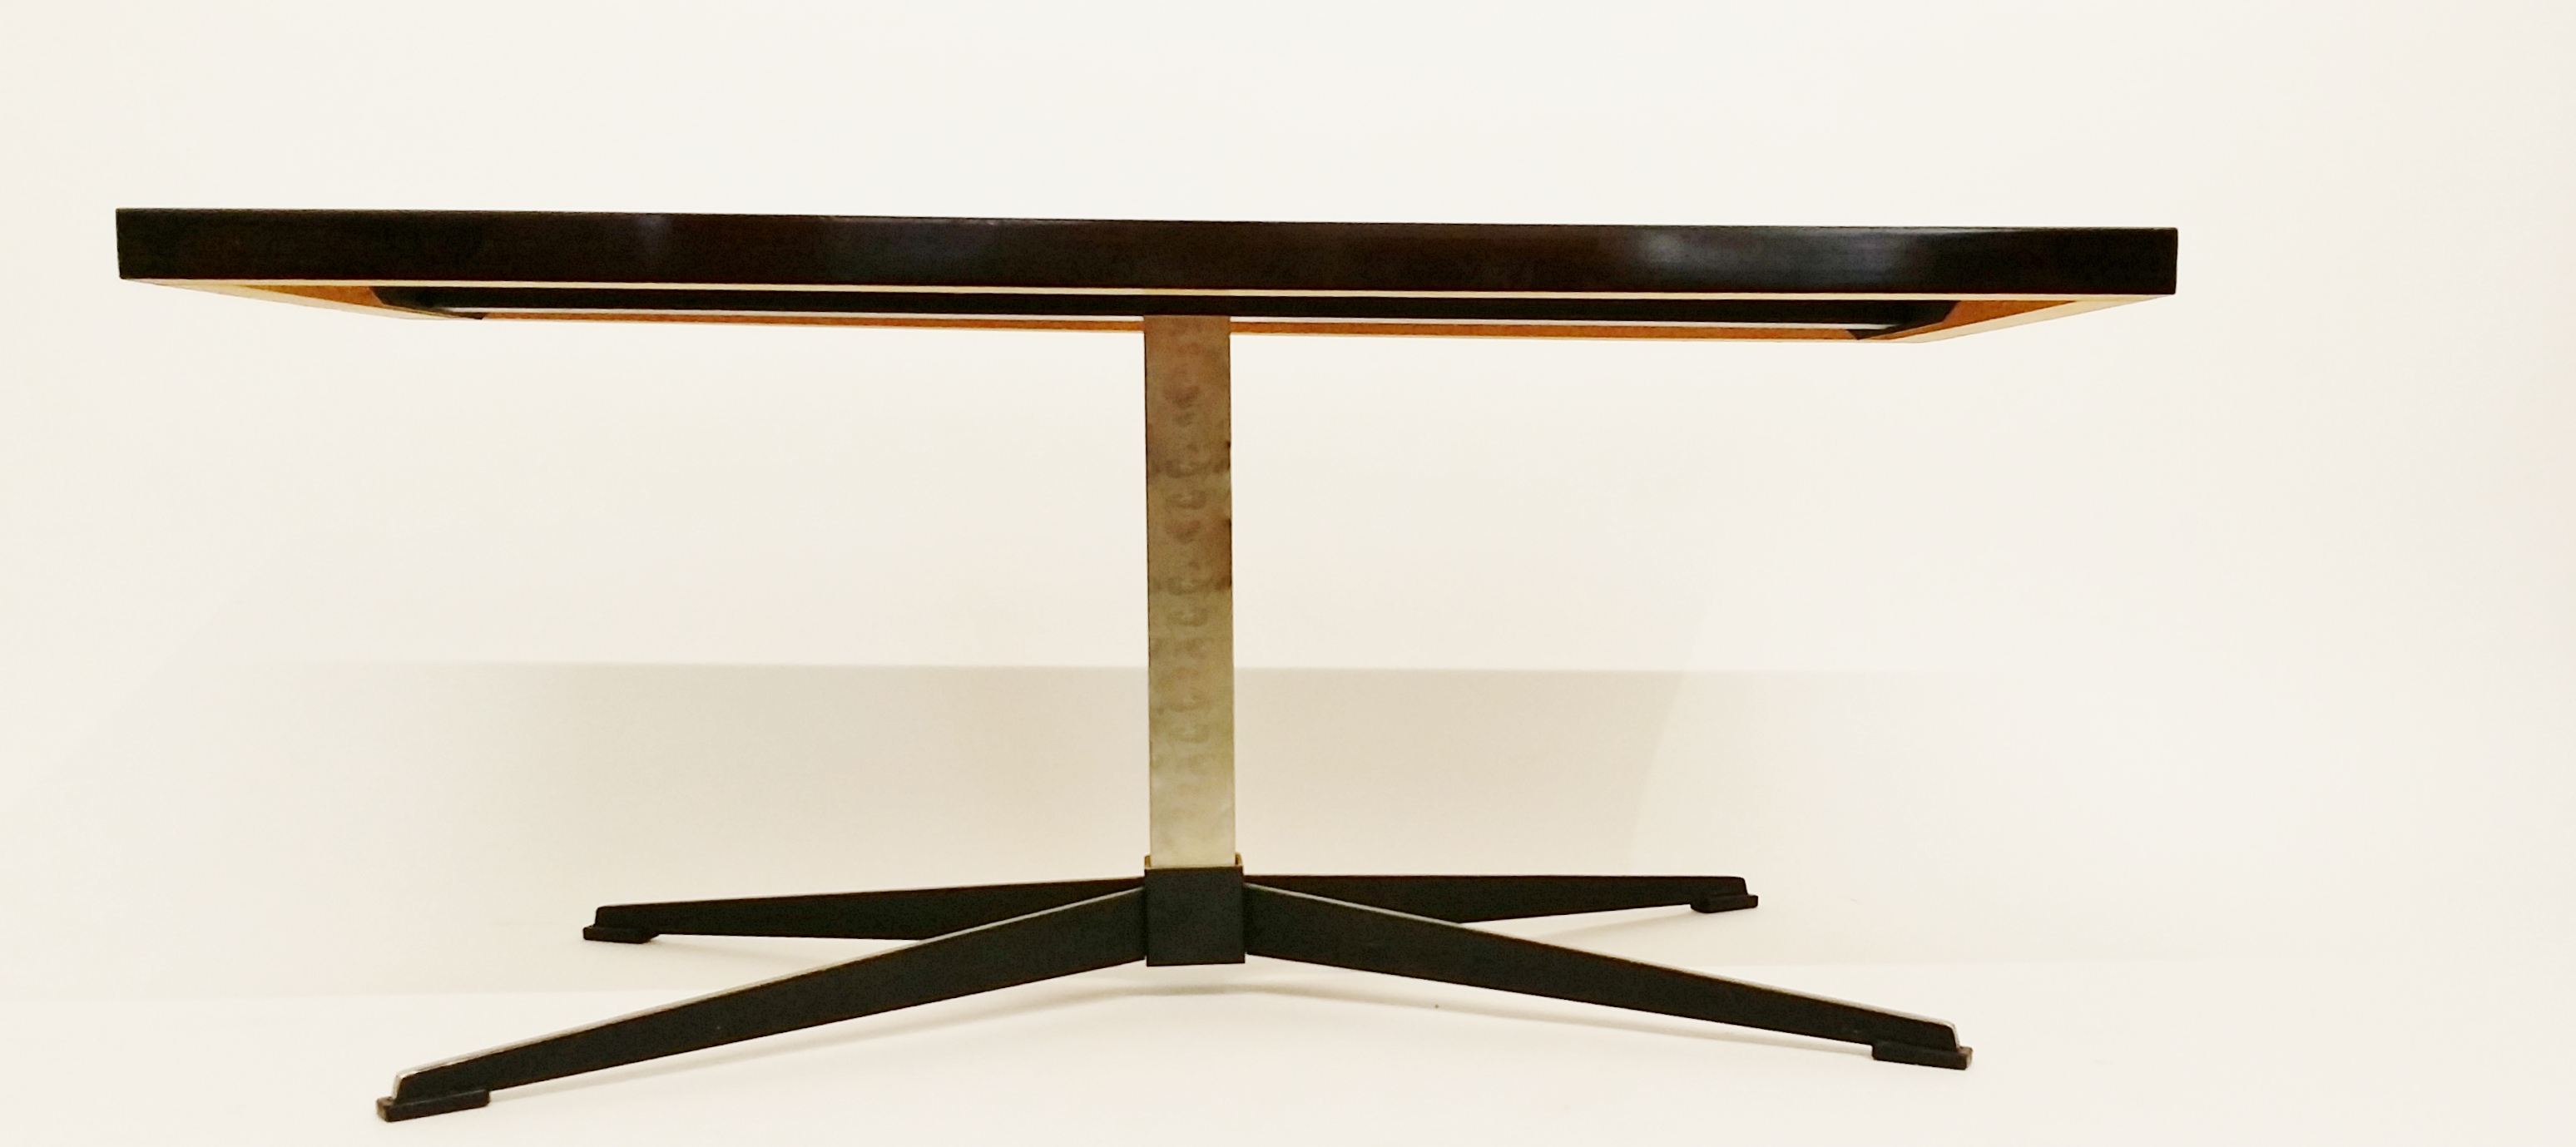 Sixties couch table